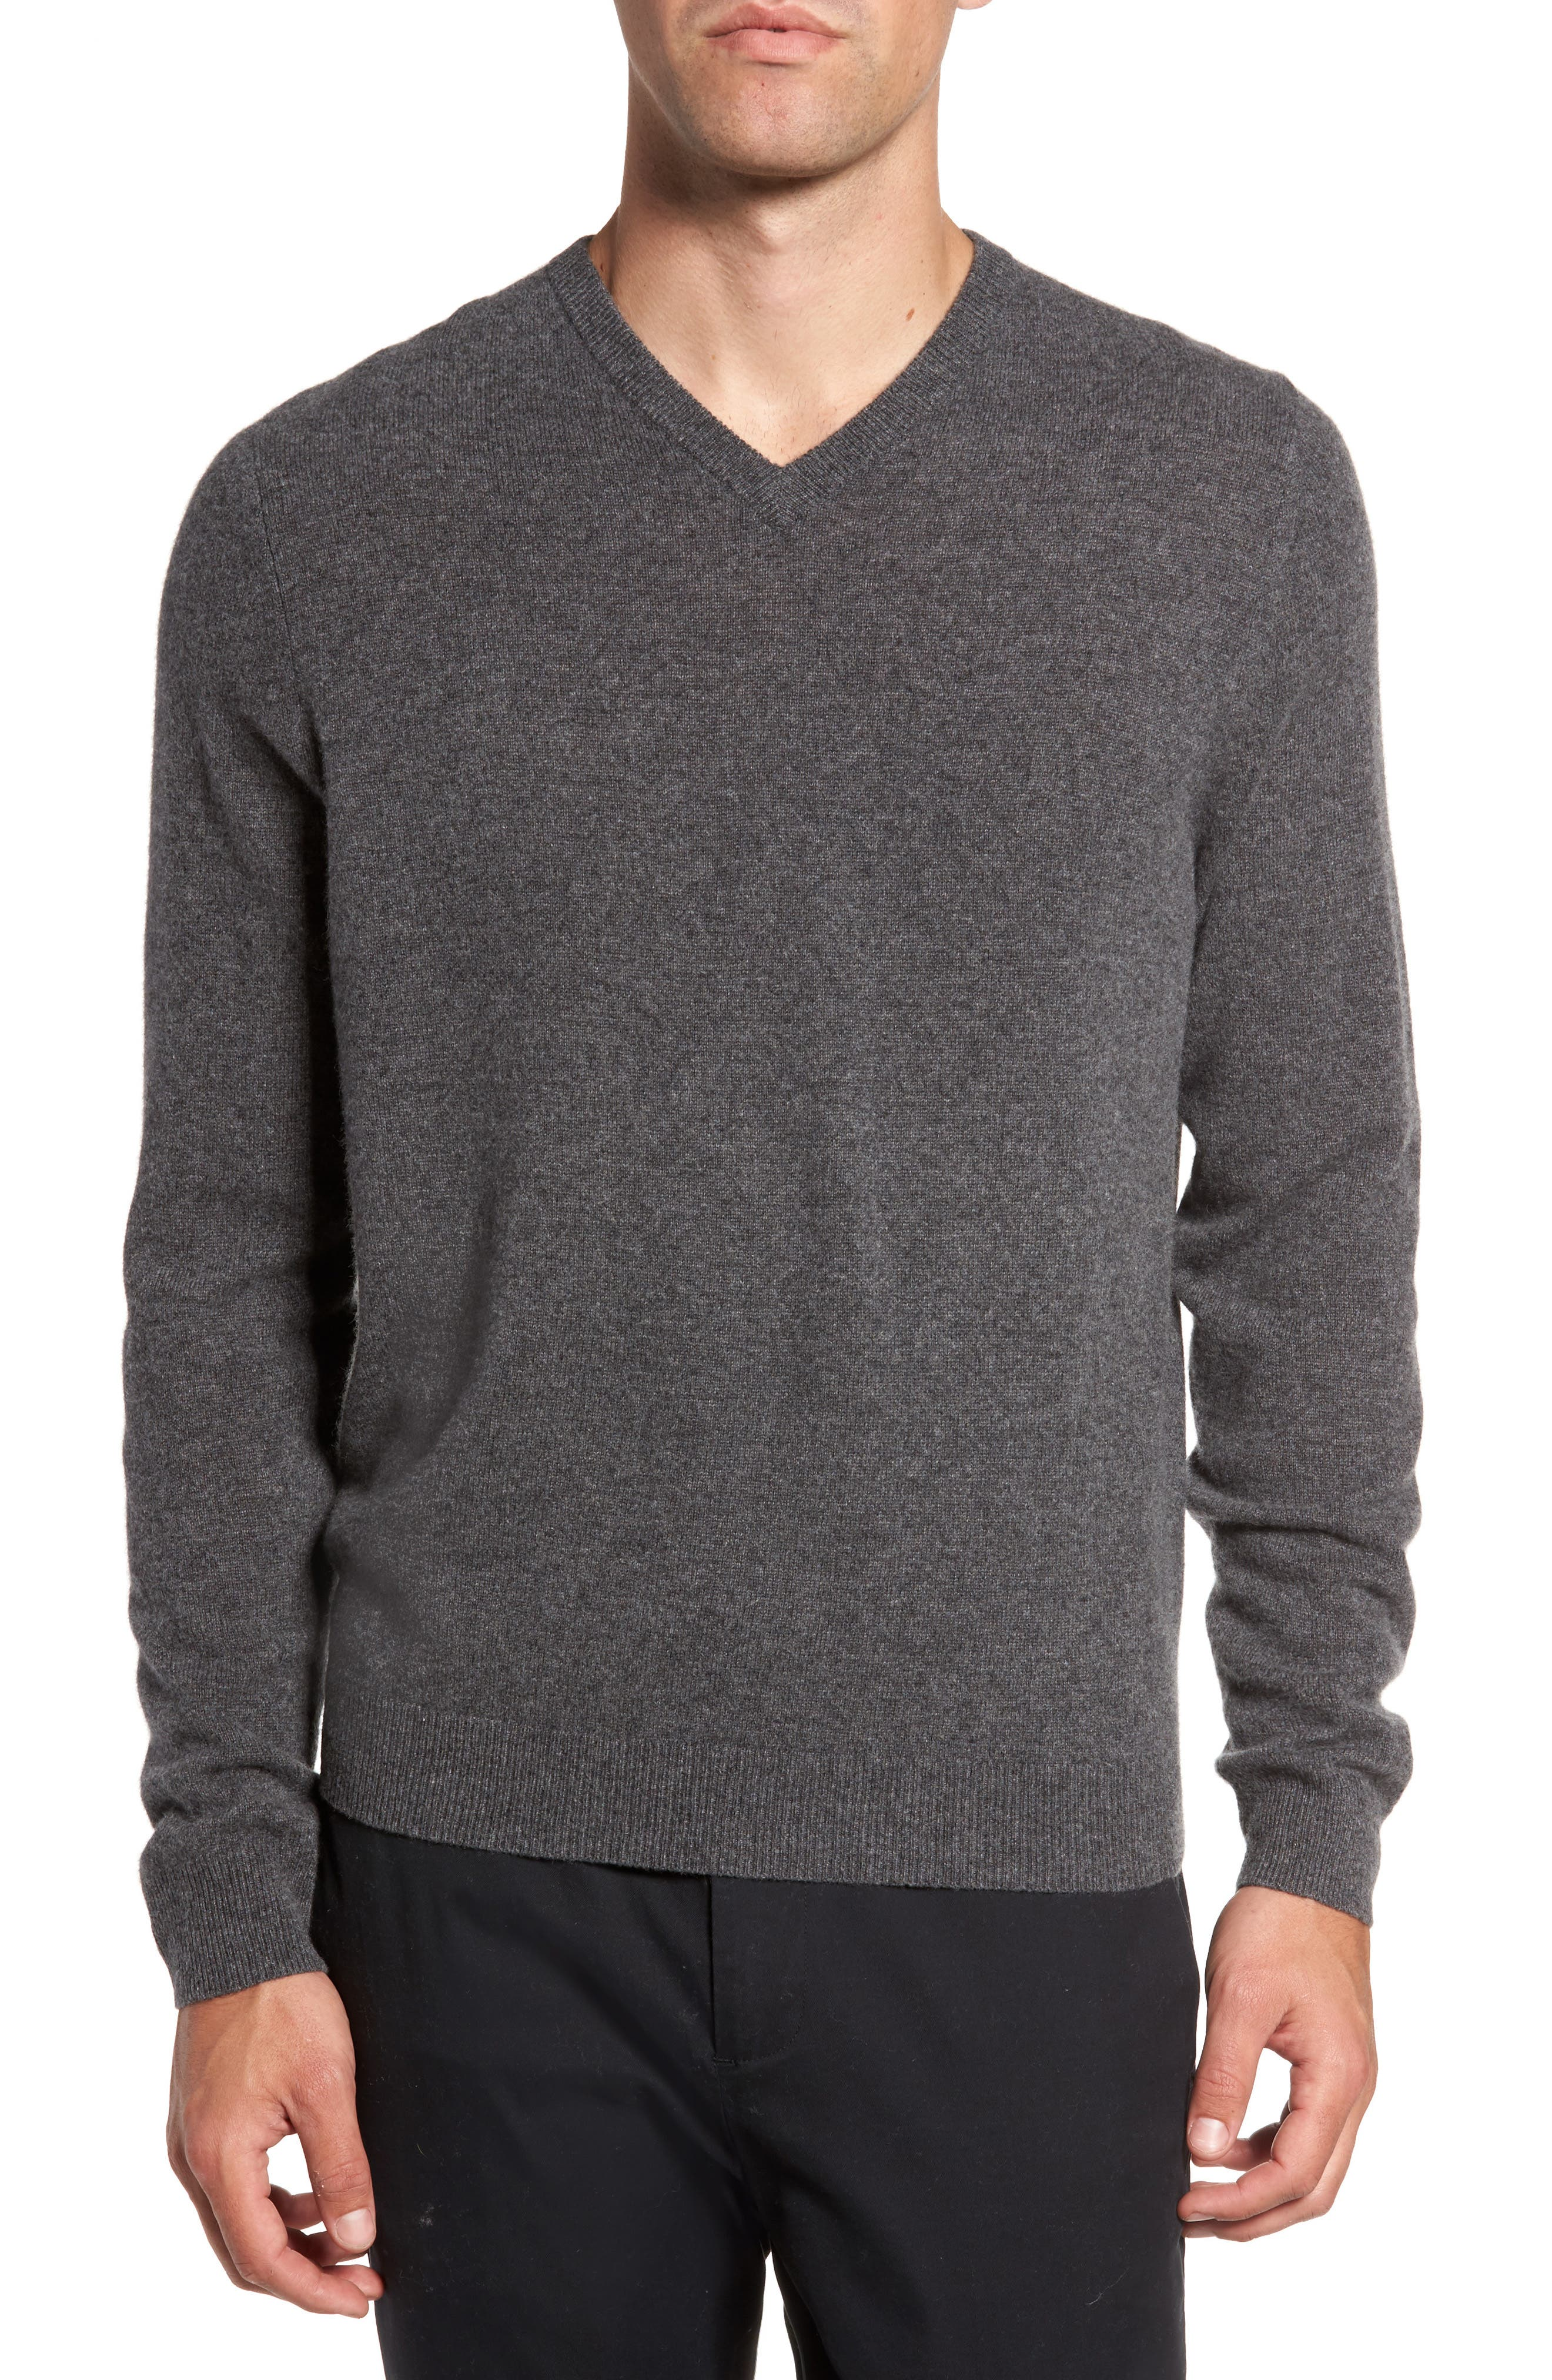 Cashmere V-Neck Sweater,                             Main thumbnail 1, color,                             GREY SHADE